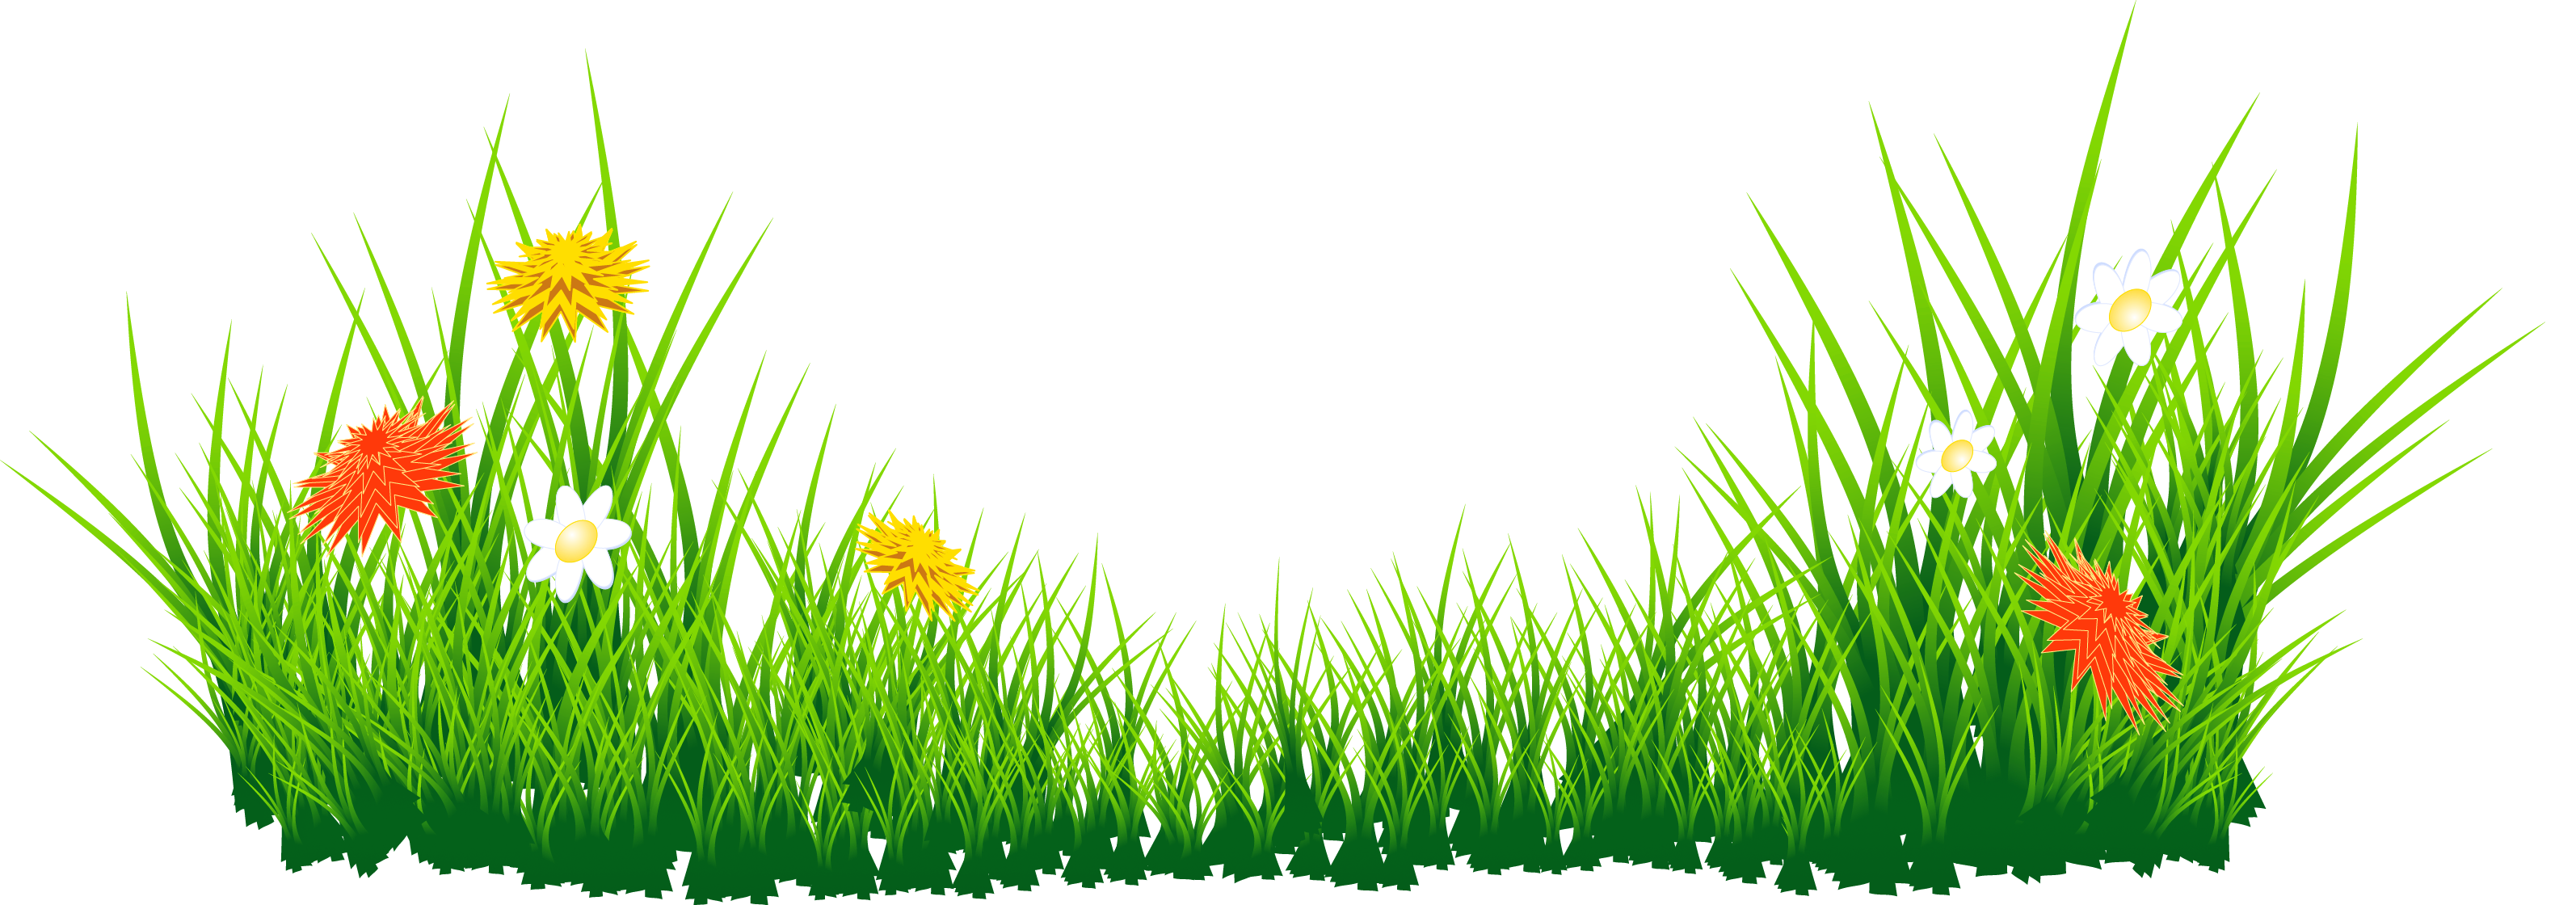 png freeuse download lawn clipart los #40716581